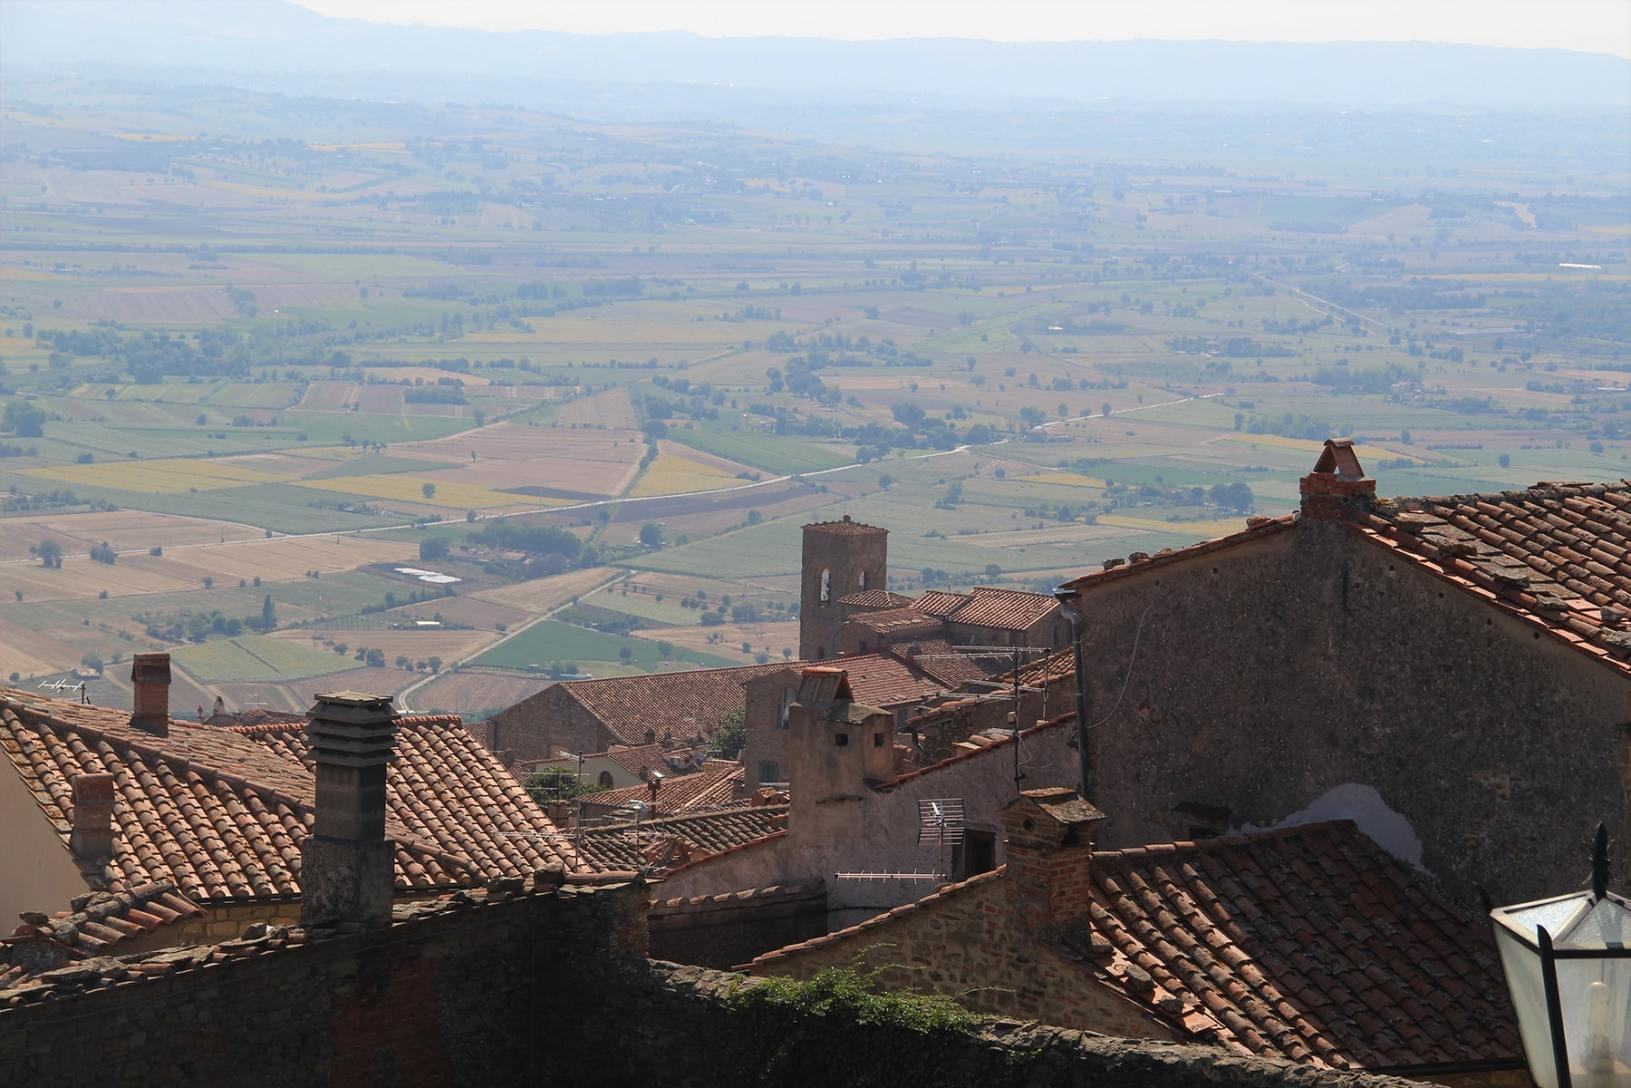 Rooftops of Perugia